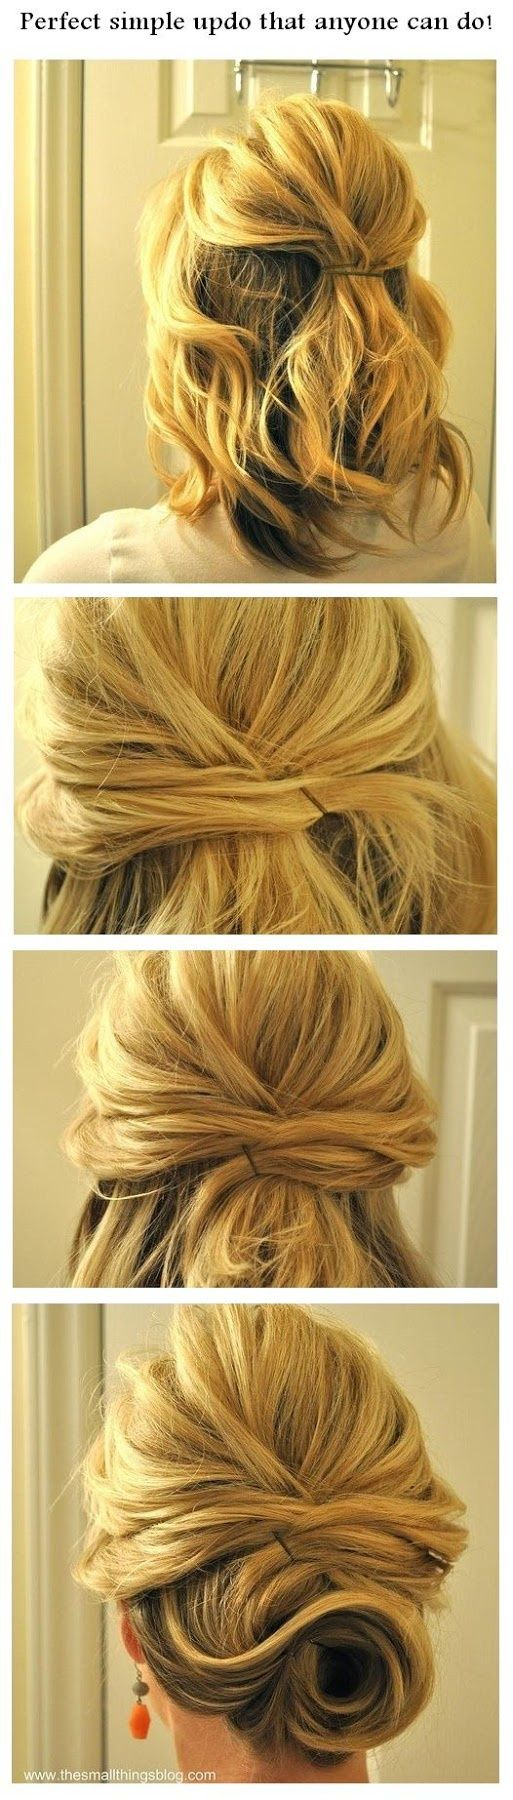 Cute updo with pinned swirl, in love with this!